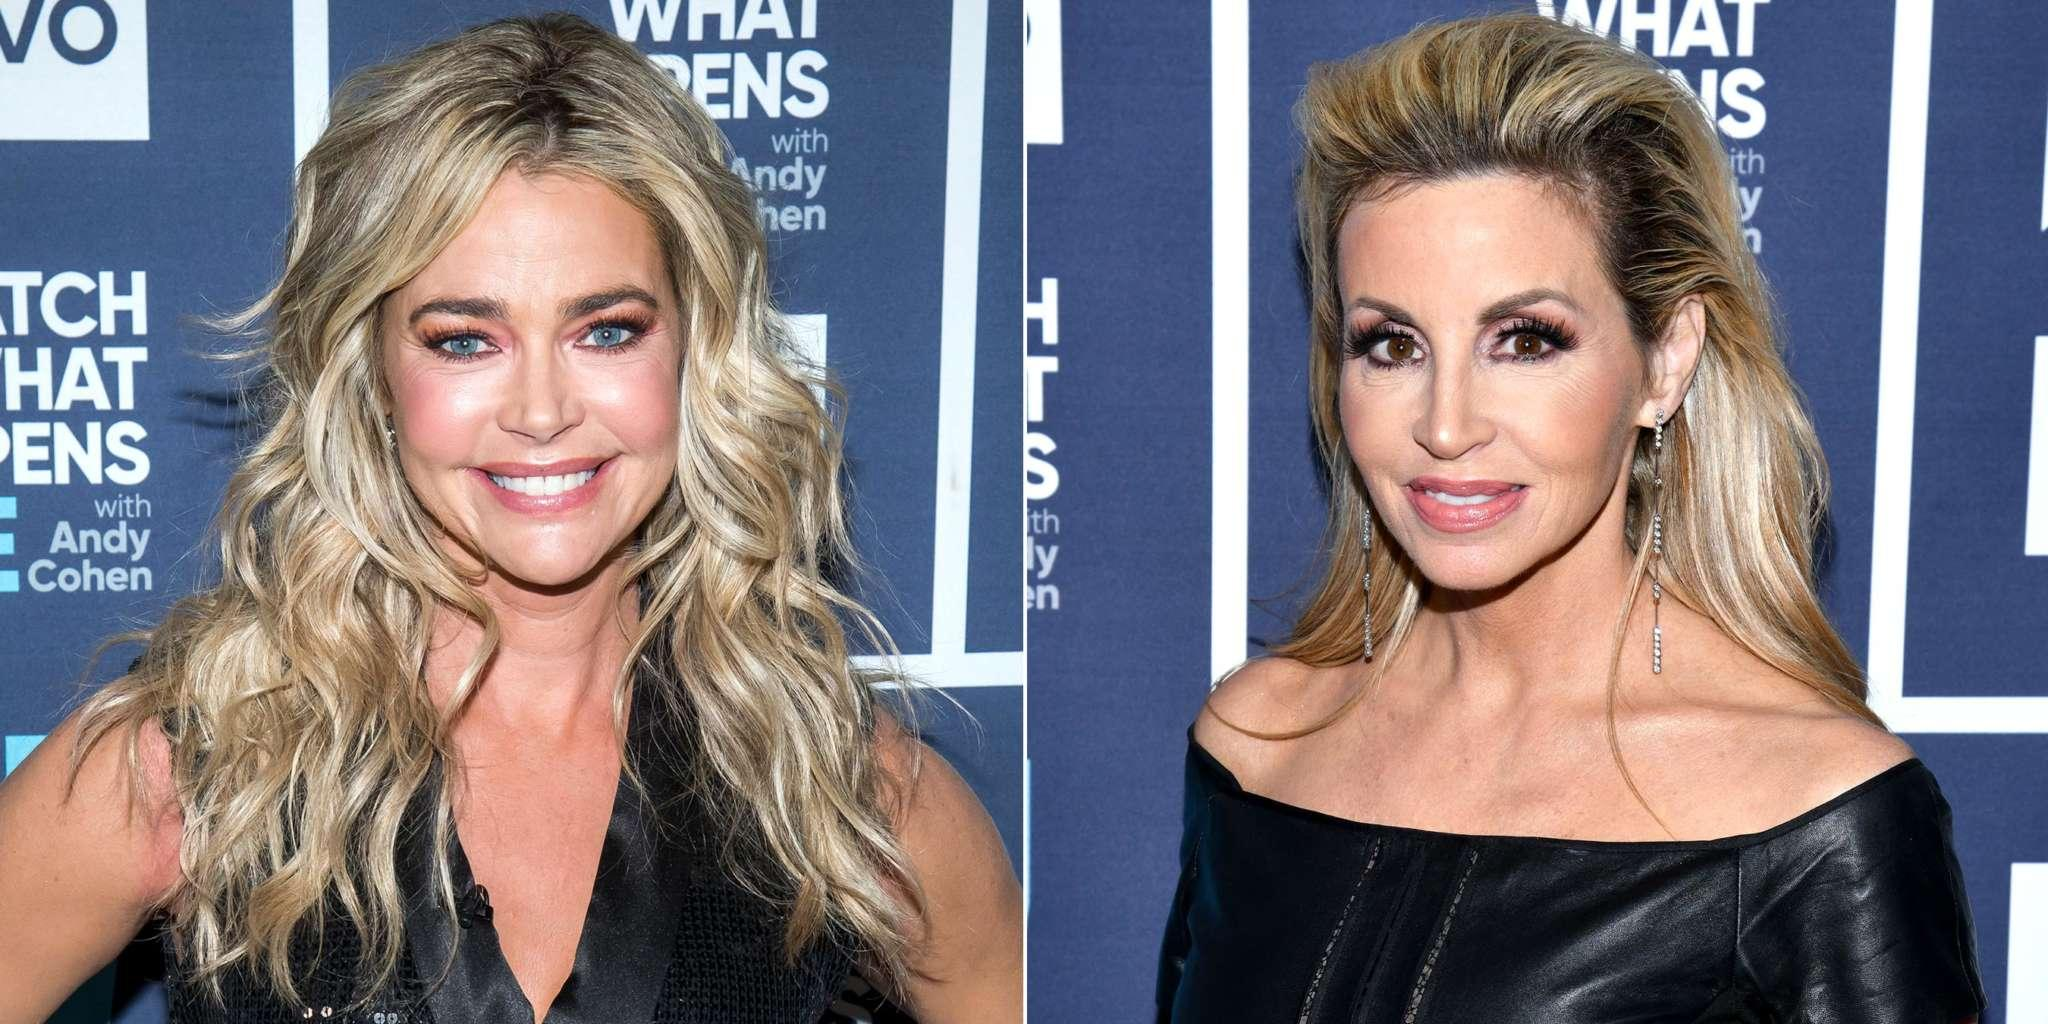 Camille Grammer Reportedly Thinks RHOBH Co-Star Denise Richards Was 'Out Of Line' For Slamming Her